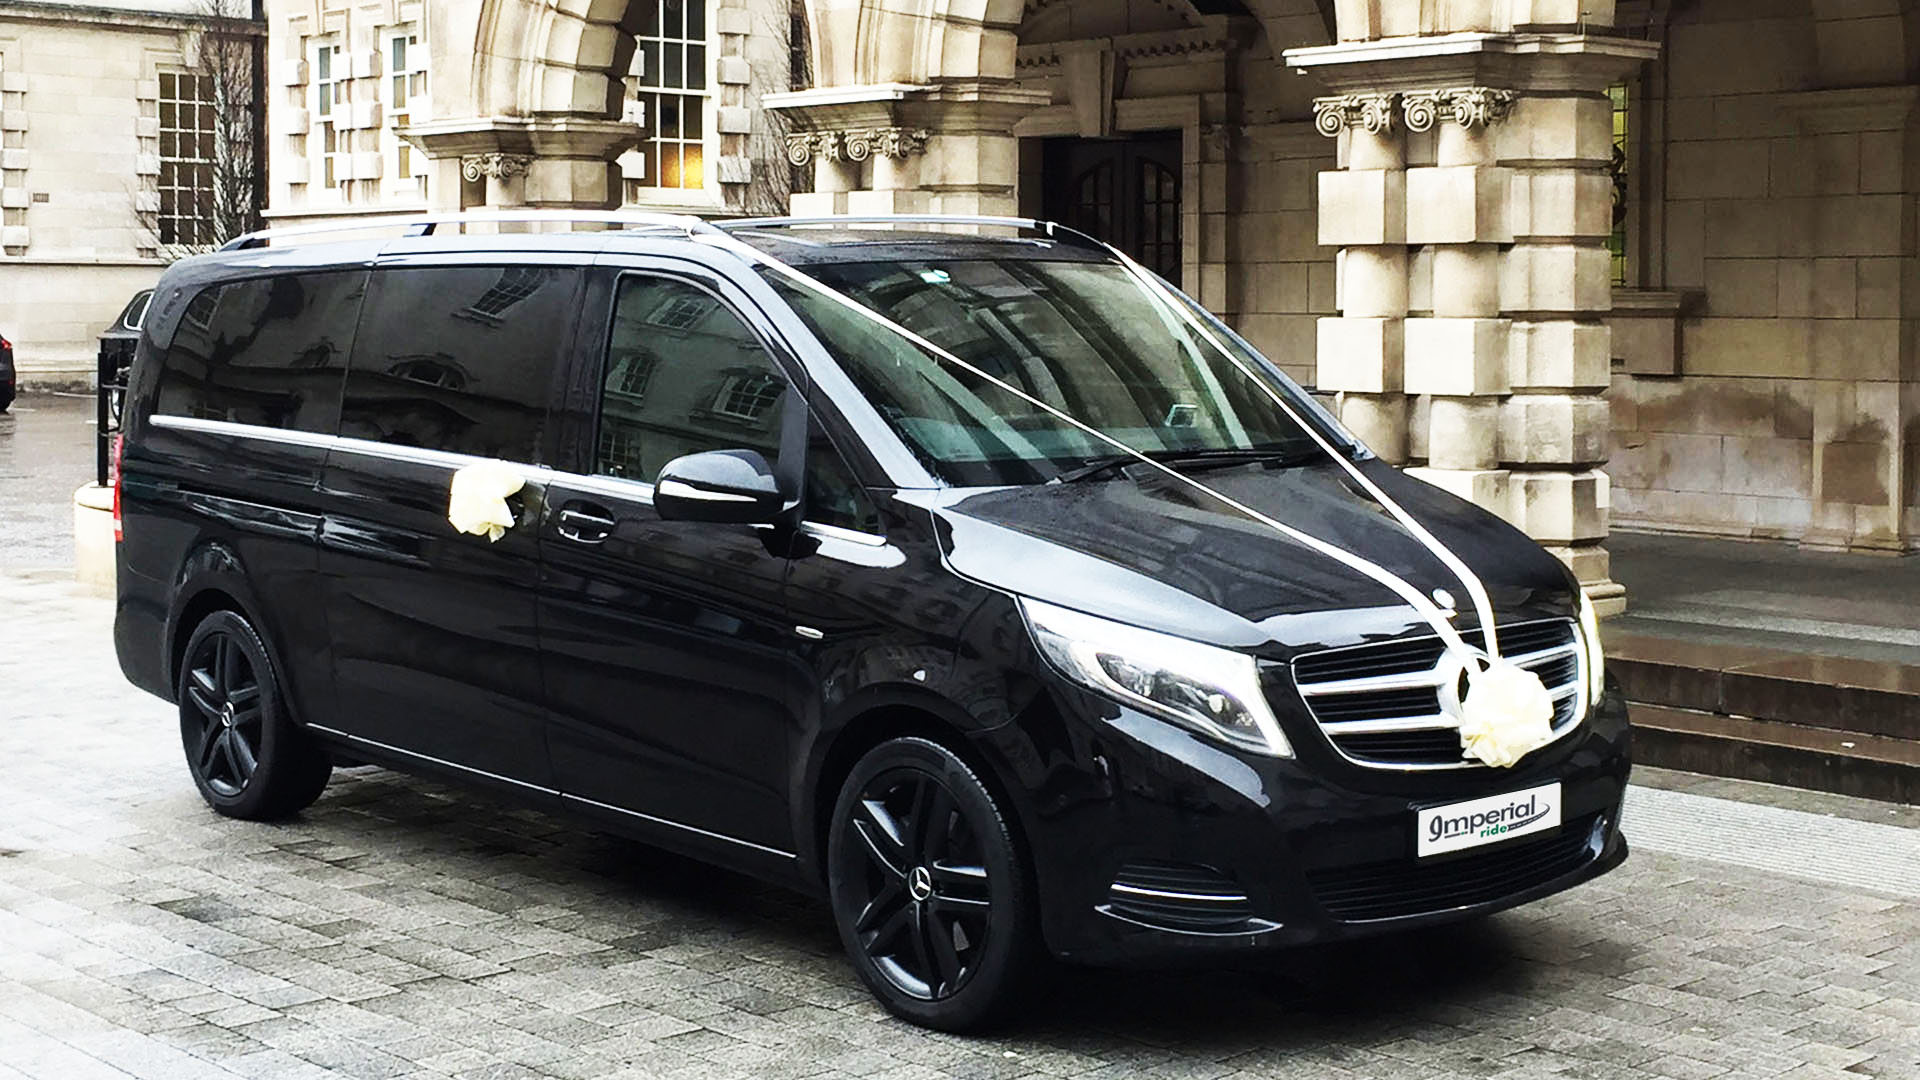 v-class-wedding-hire-in-merton